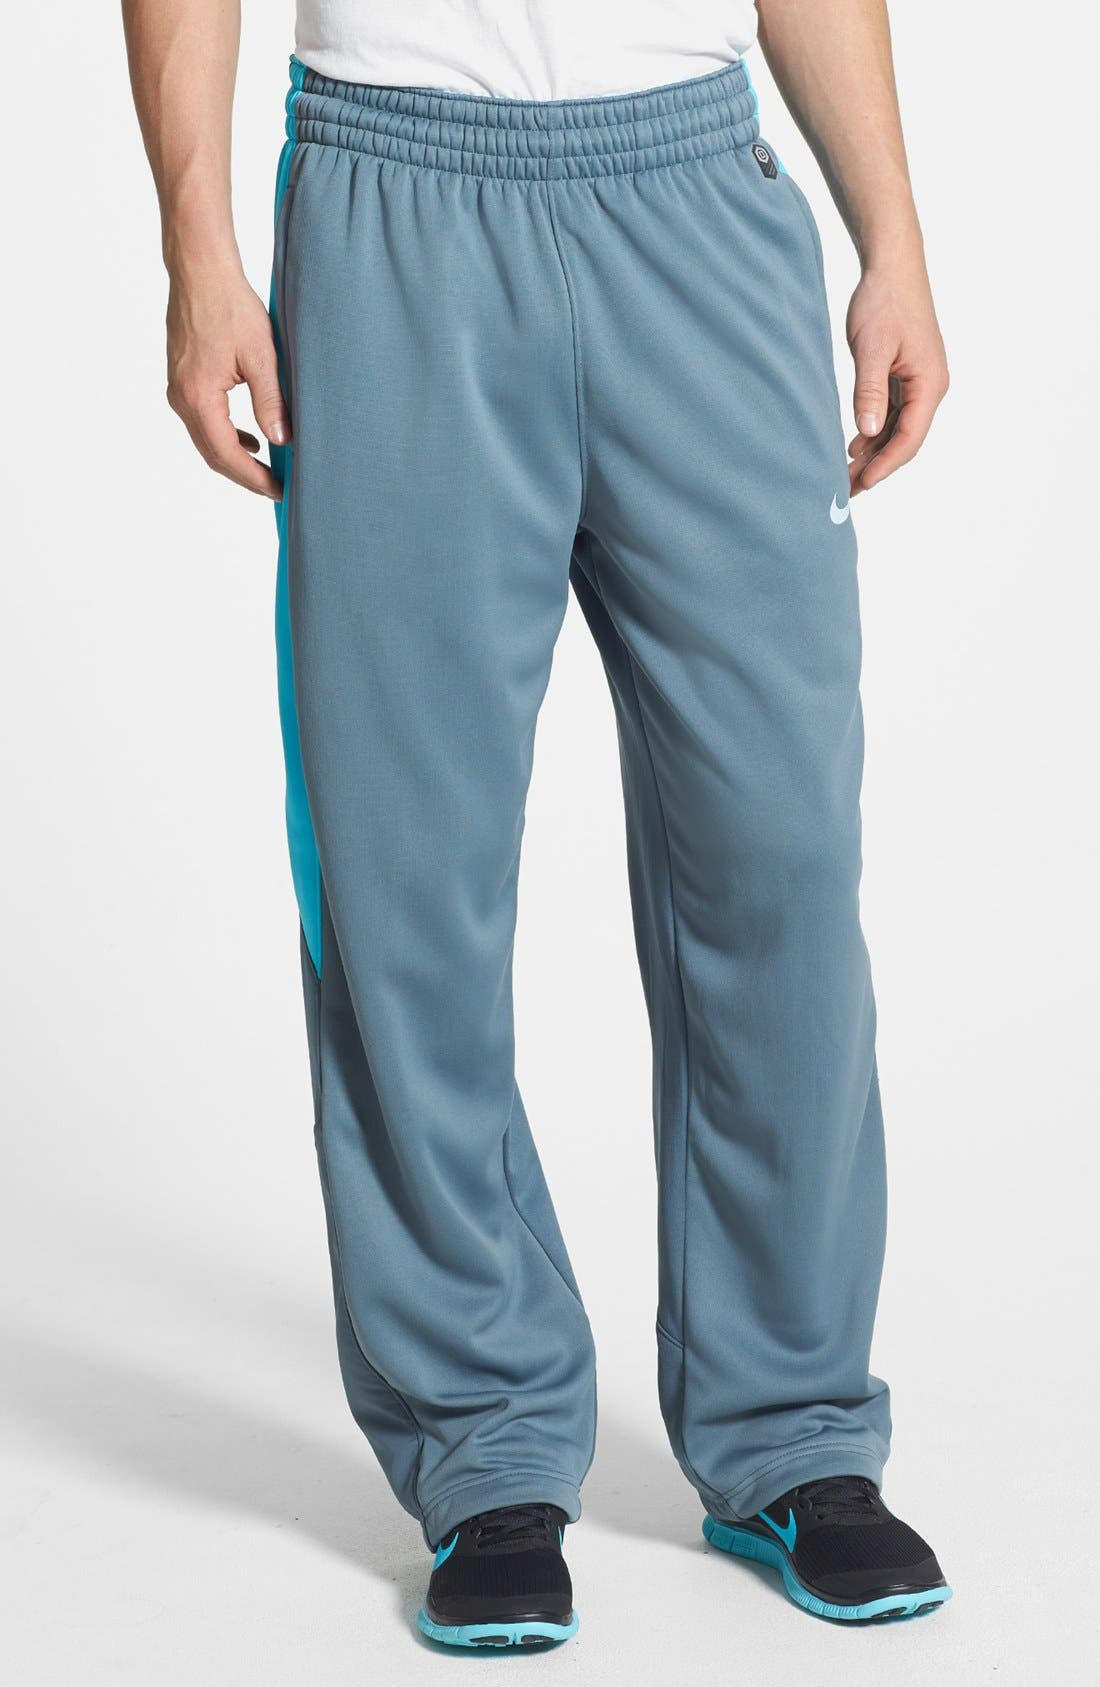 Alternate Image 1 Selected - Nike 'Hero' Fleece Pants